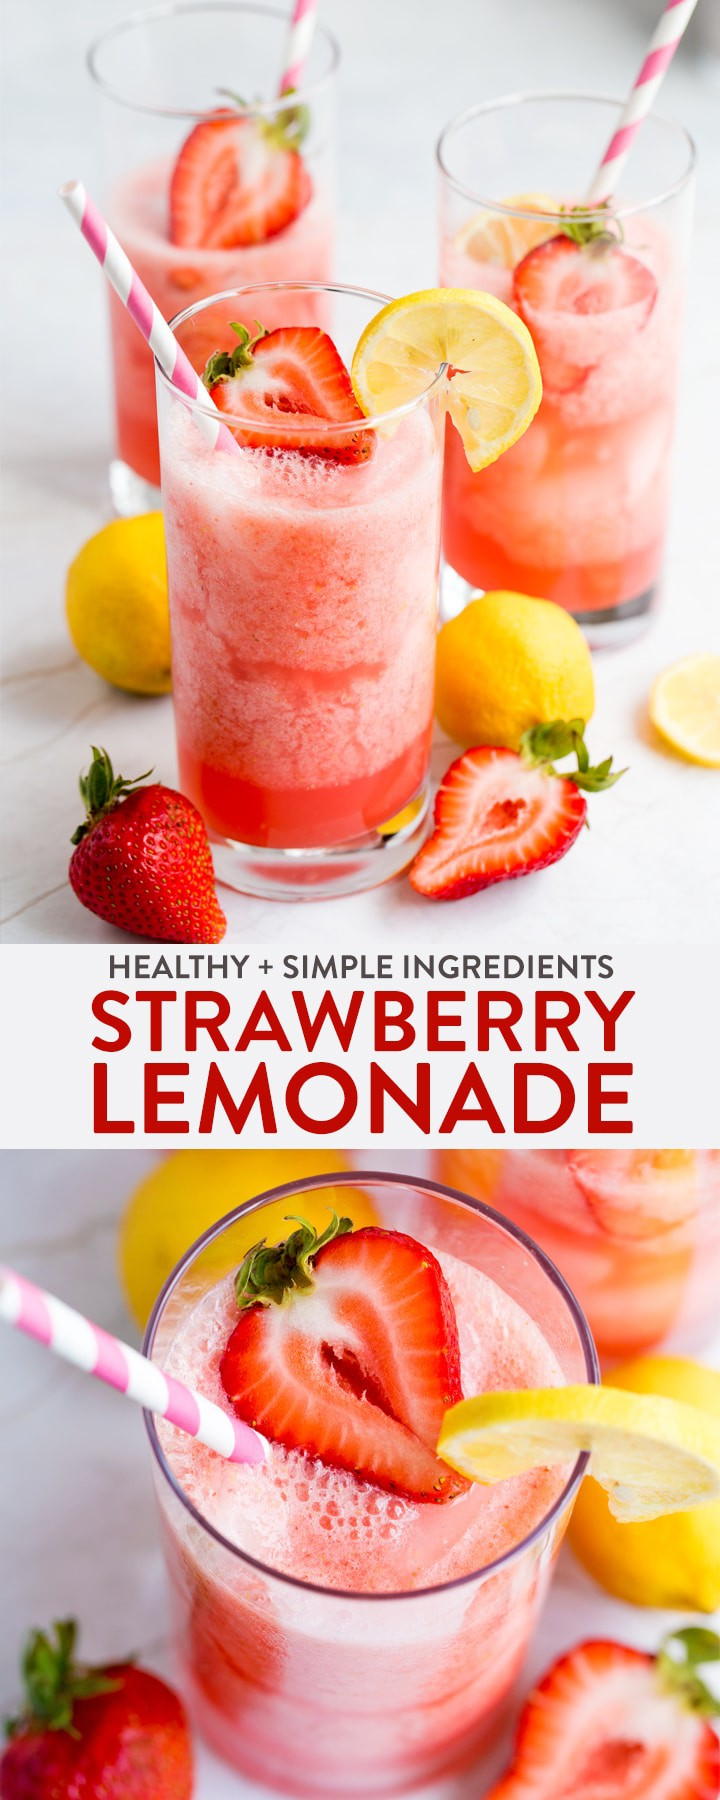 This homemade strawberry lemonade recipe takes seconds to prepare and is a healthy, wholesome, and easy way to enjoy a summer drink. Whether it's a healthy drink for kids or a detox mocktail for mom, this non-alcoholic drink is for everyone.  #thebewitchinkitchen #homemadelemonade #strawberrylemonade #healthylemonade #healthydrinks #healthydrinksforkids #drinkrecipes #mocktailrecipes